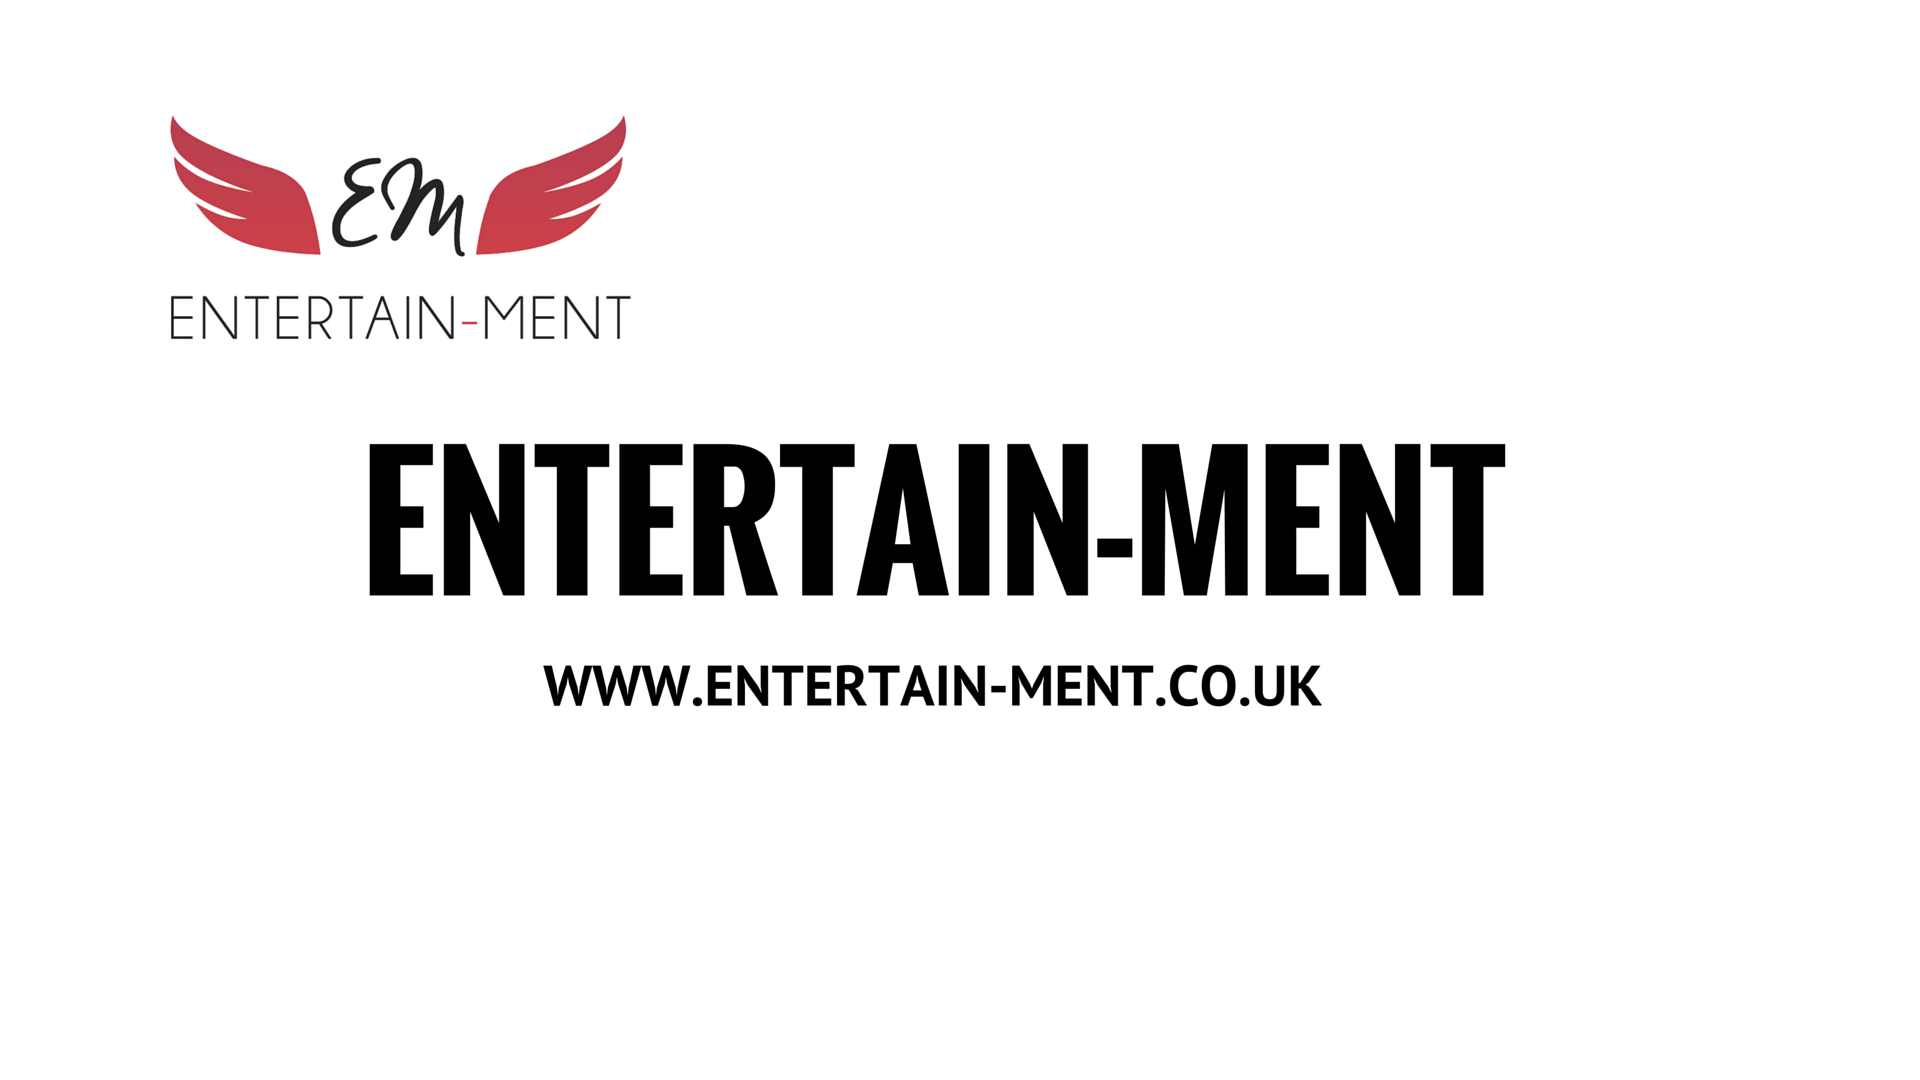 www.Entertain-ment.co.uk Reviews